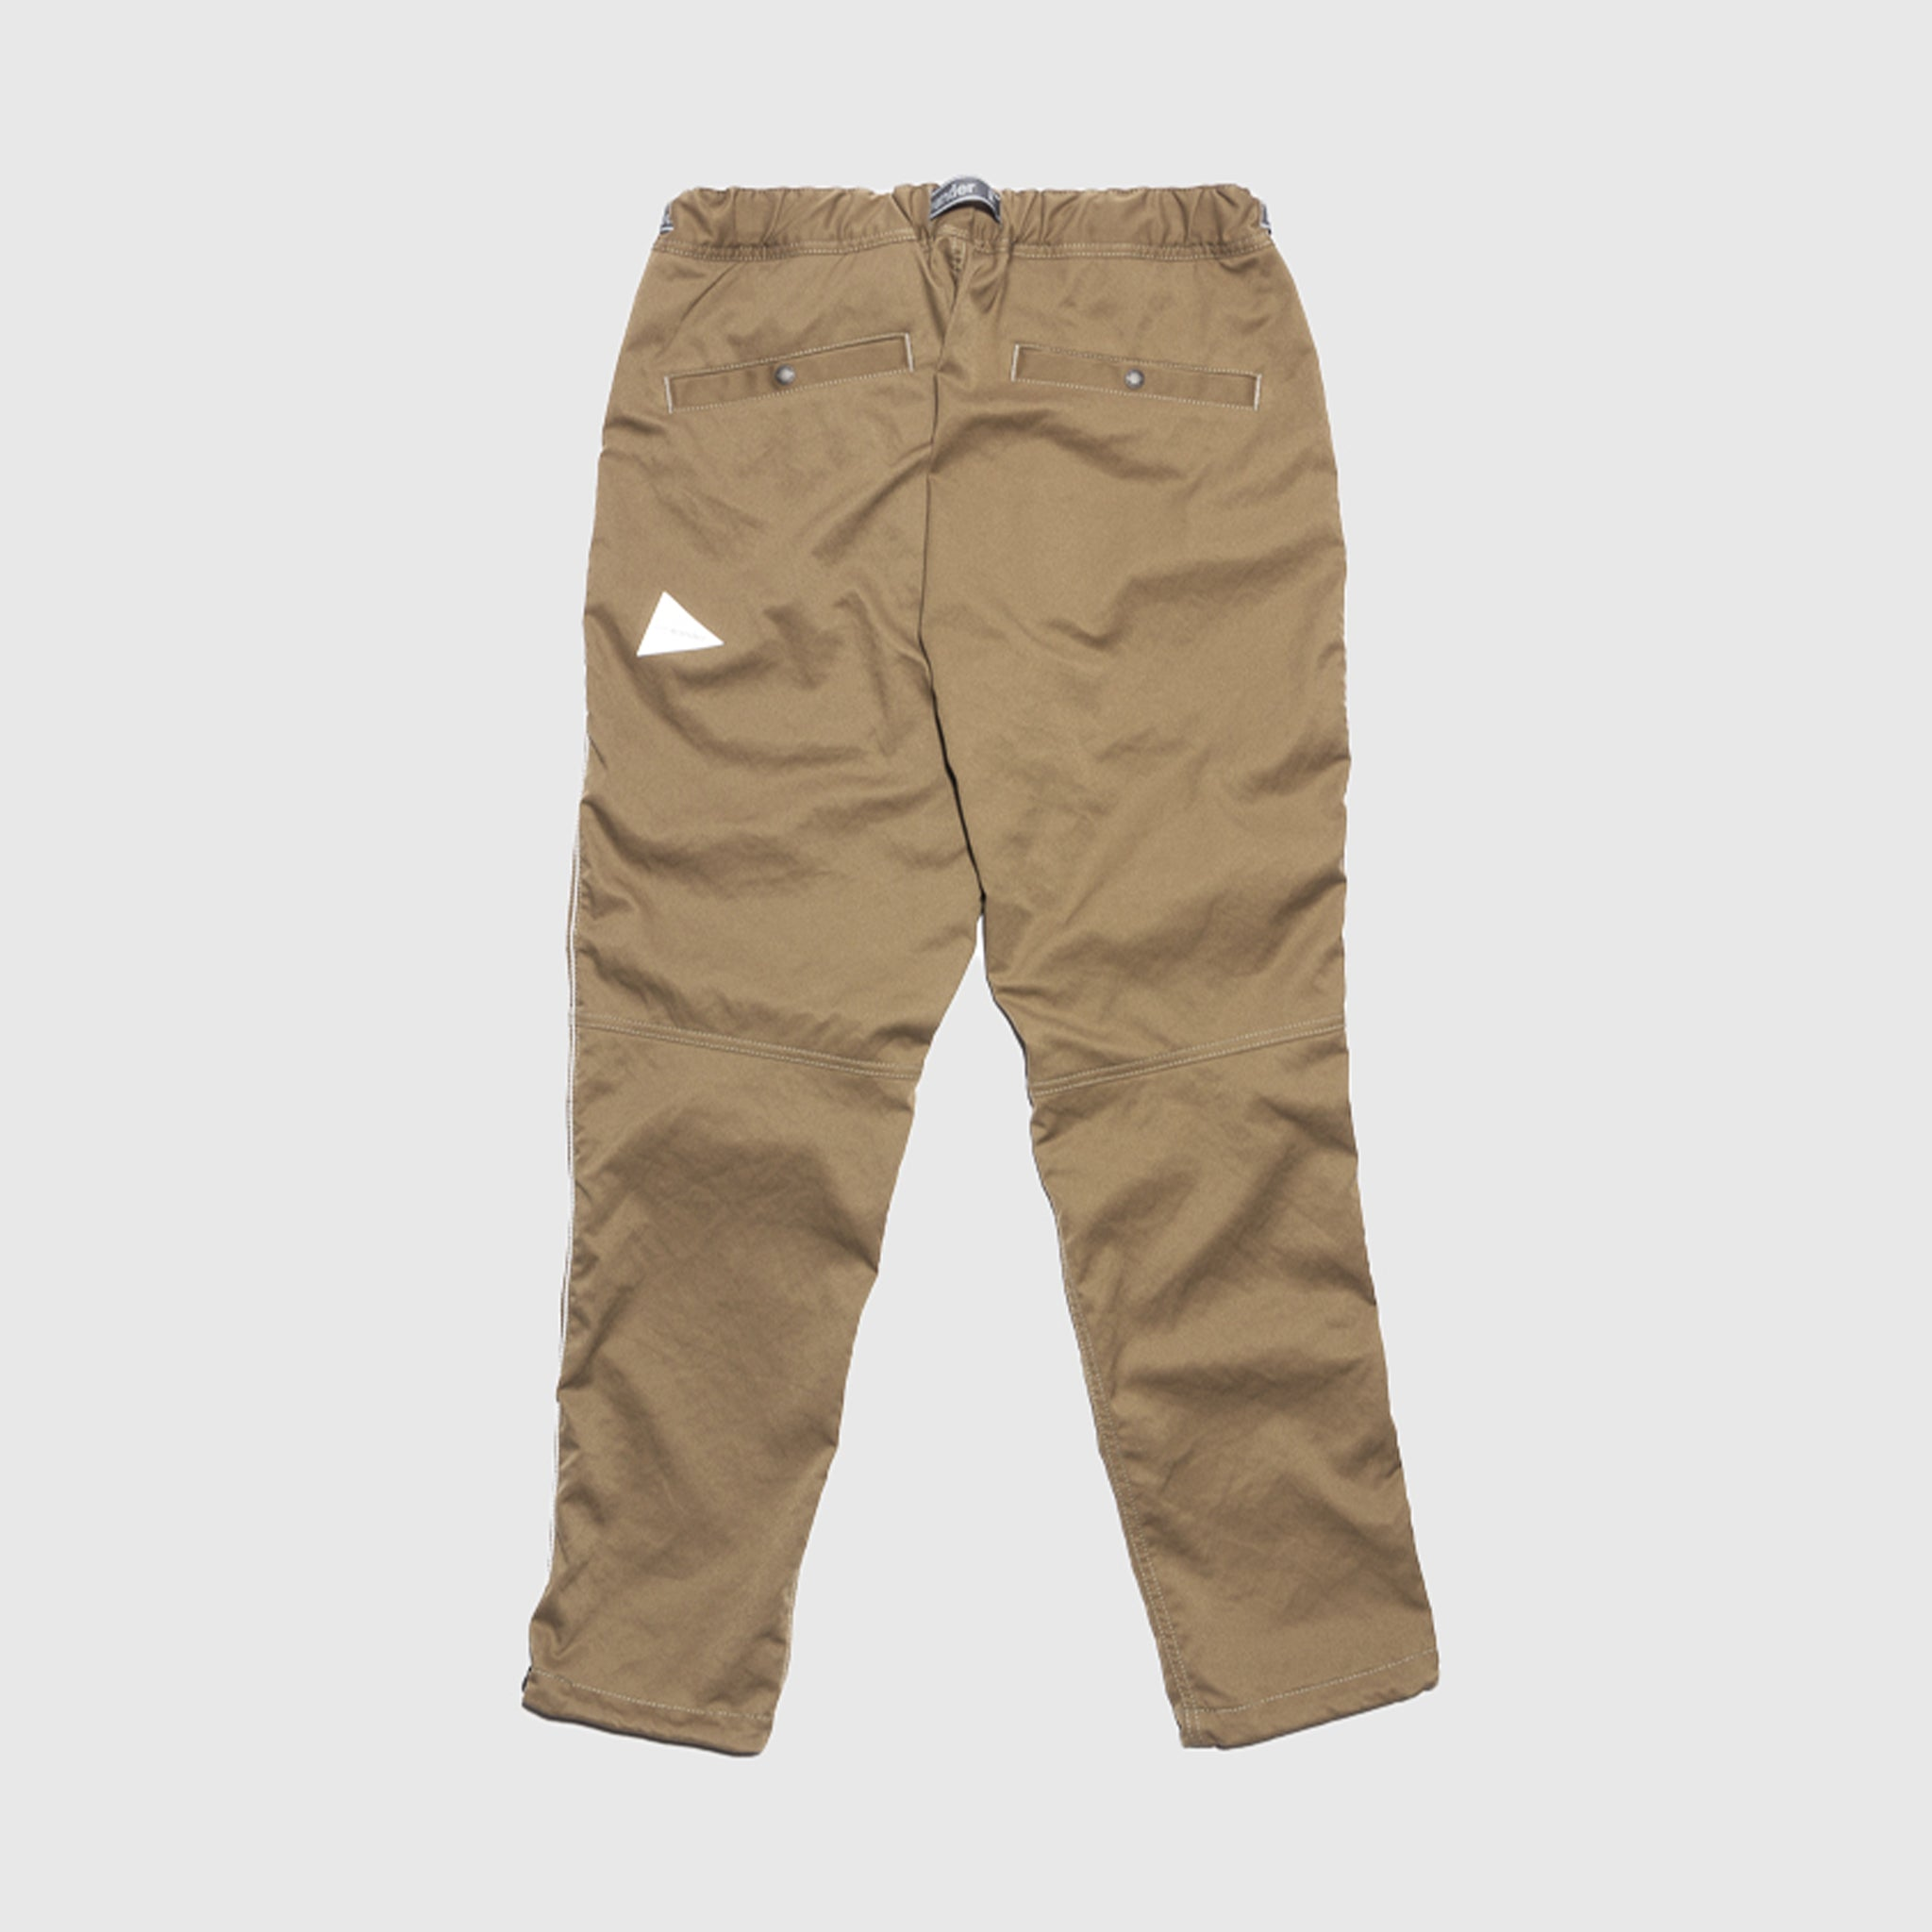 AND WANDER POLYESTER CLIMBING PANTS